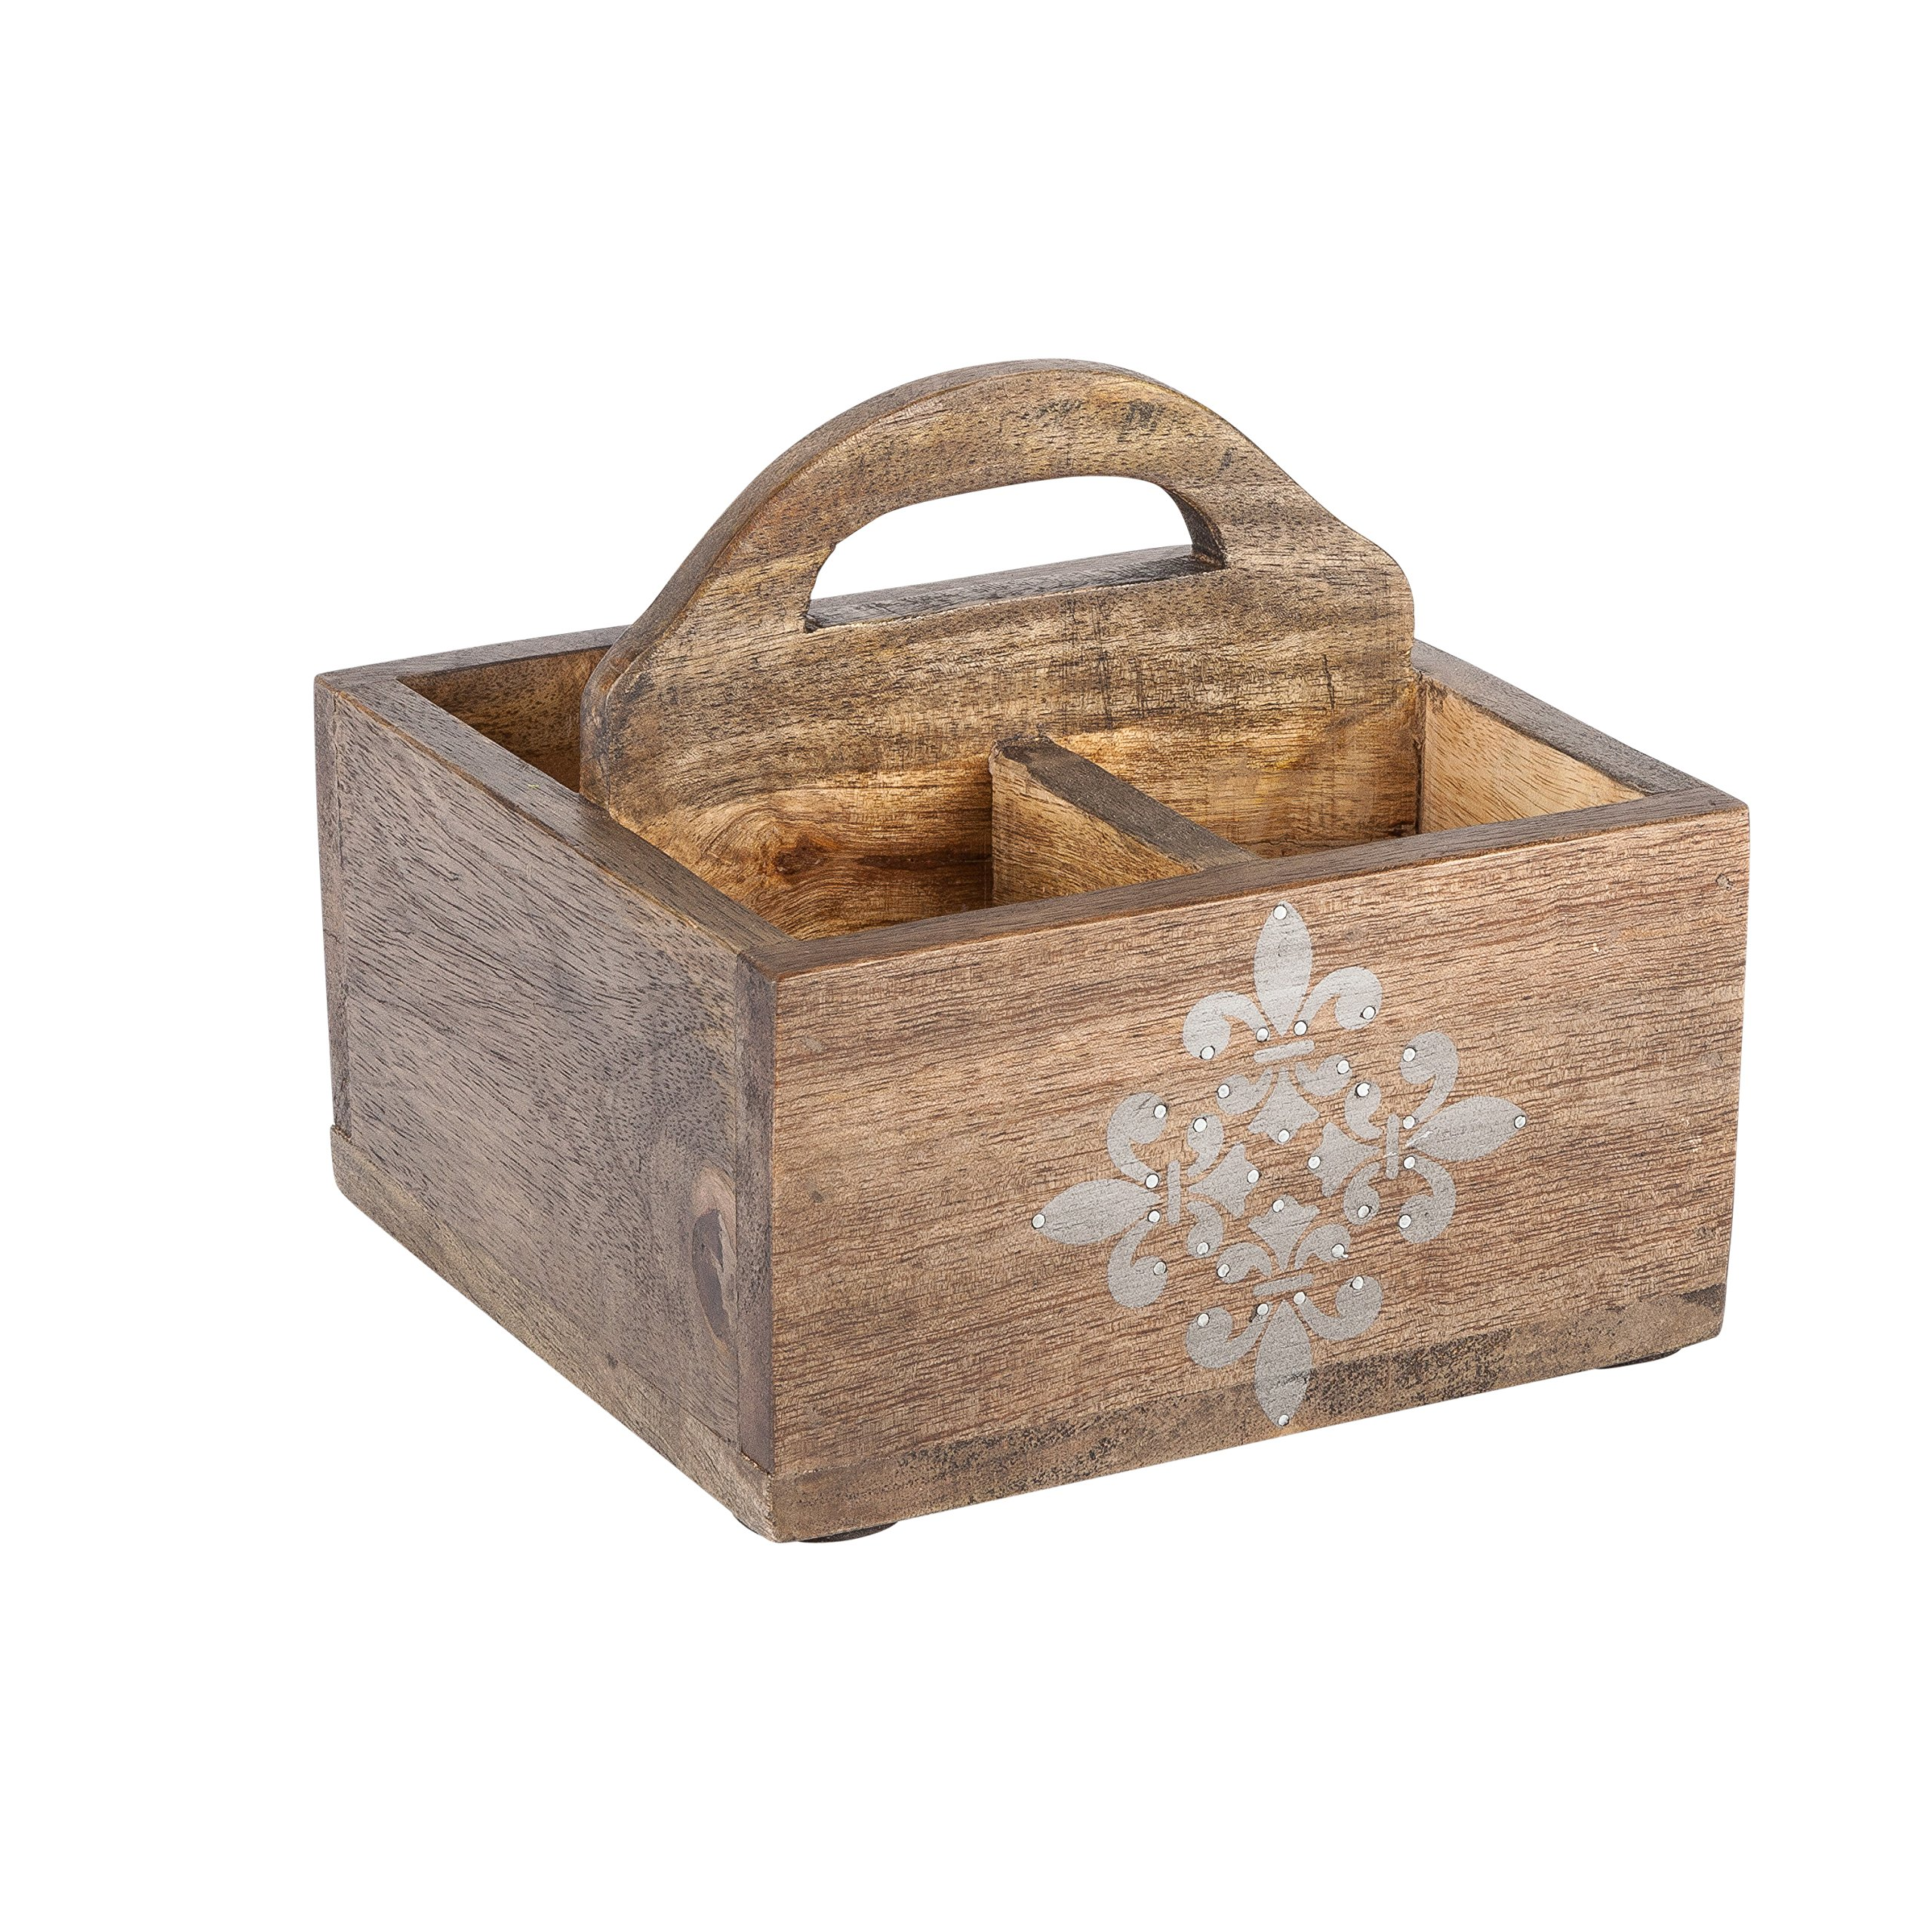 The Gerson Company 93531 7.5''X7.5'' Meadowlark Home Collection Hand Made Mango Wood Fleur De Lis Pattern Wood Caddy